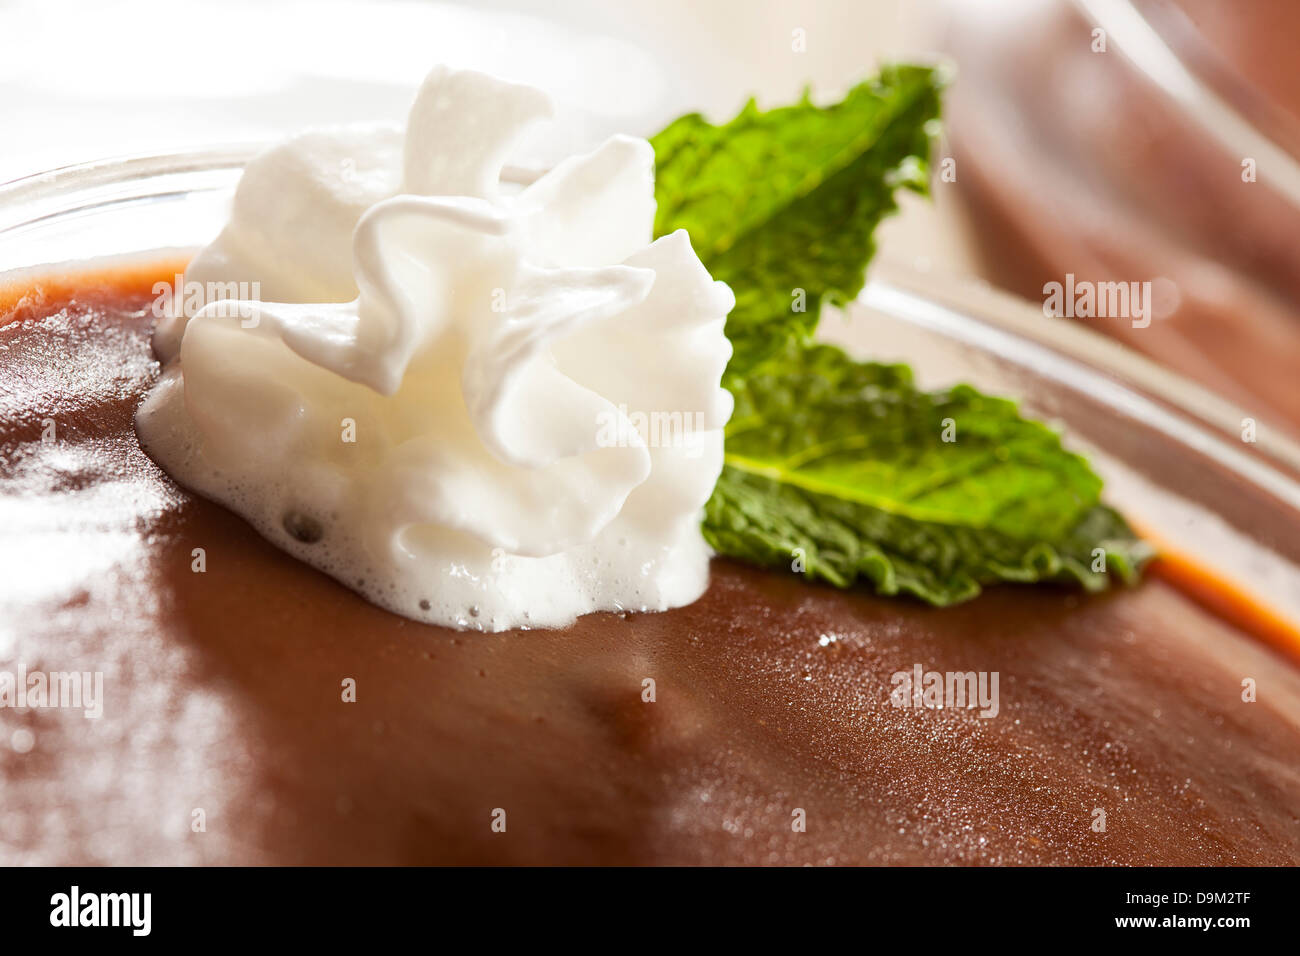 Hot Homemade Chocolate Pudding with whipped cream - Stock Image